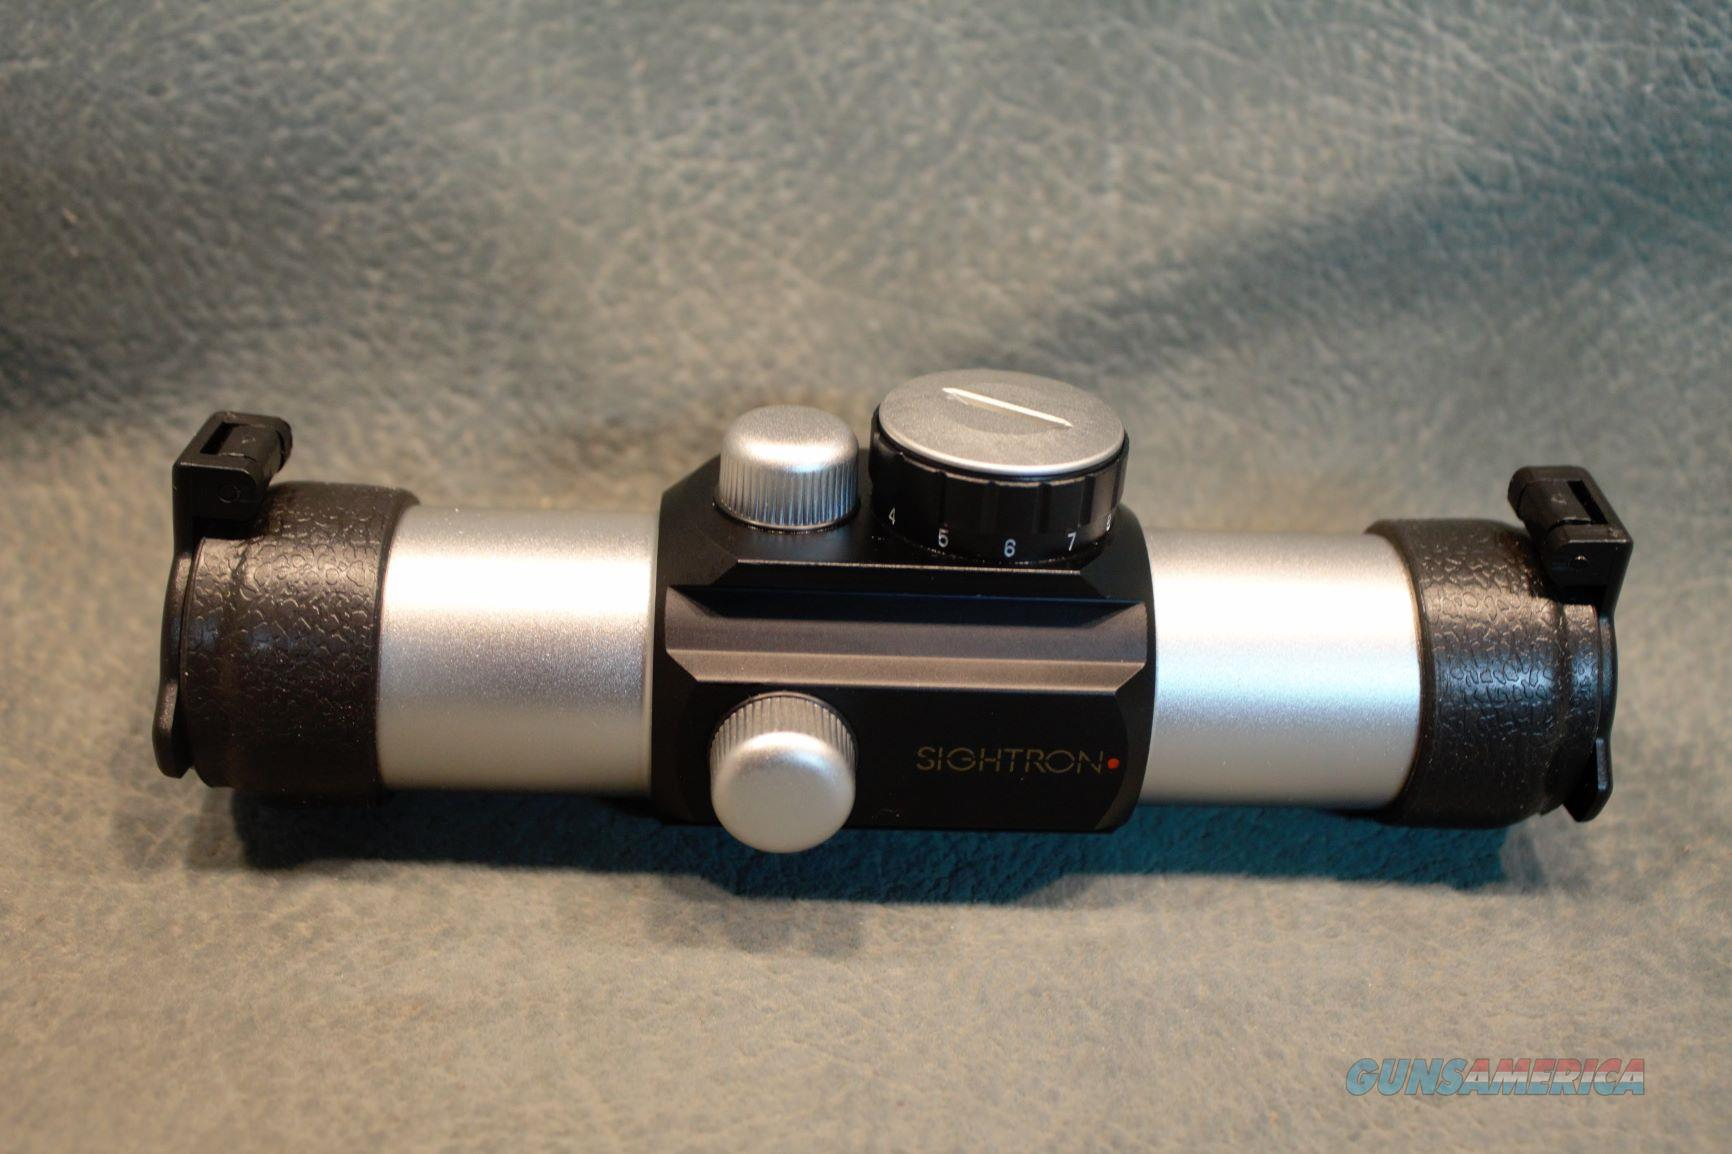 Sightron S33-4RST Red Dot Scope  Non-Guns > Scopes/Mounts/Rings & Optics > Tactical Scopes > Red Dot